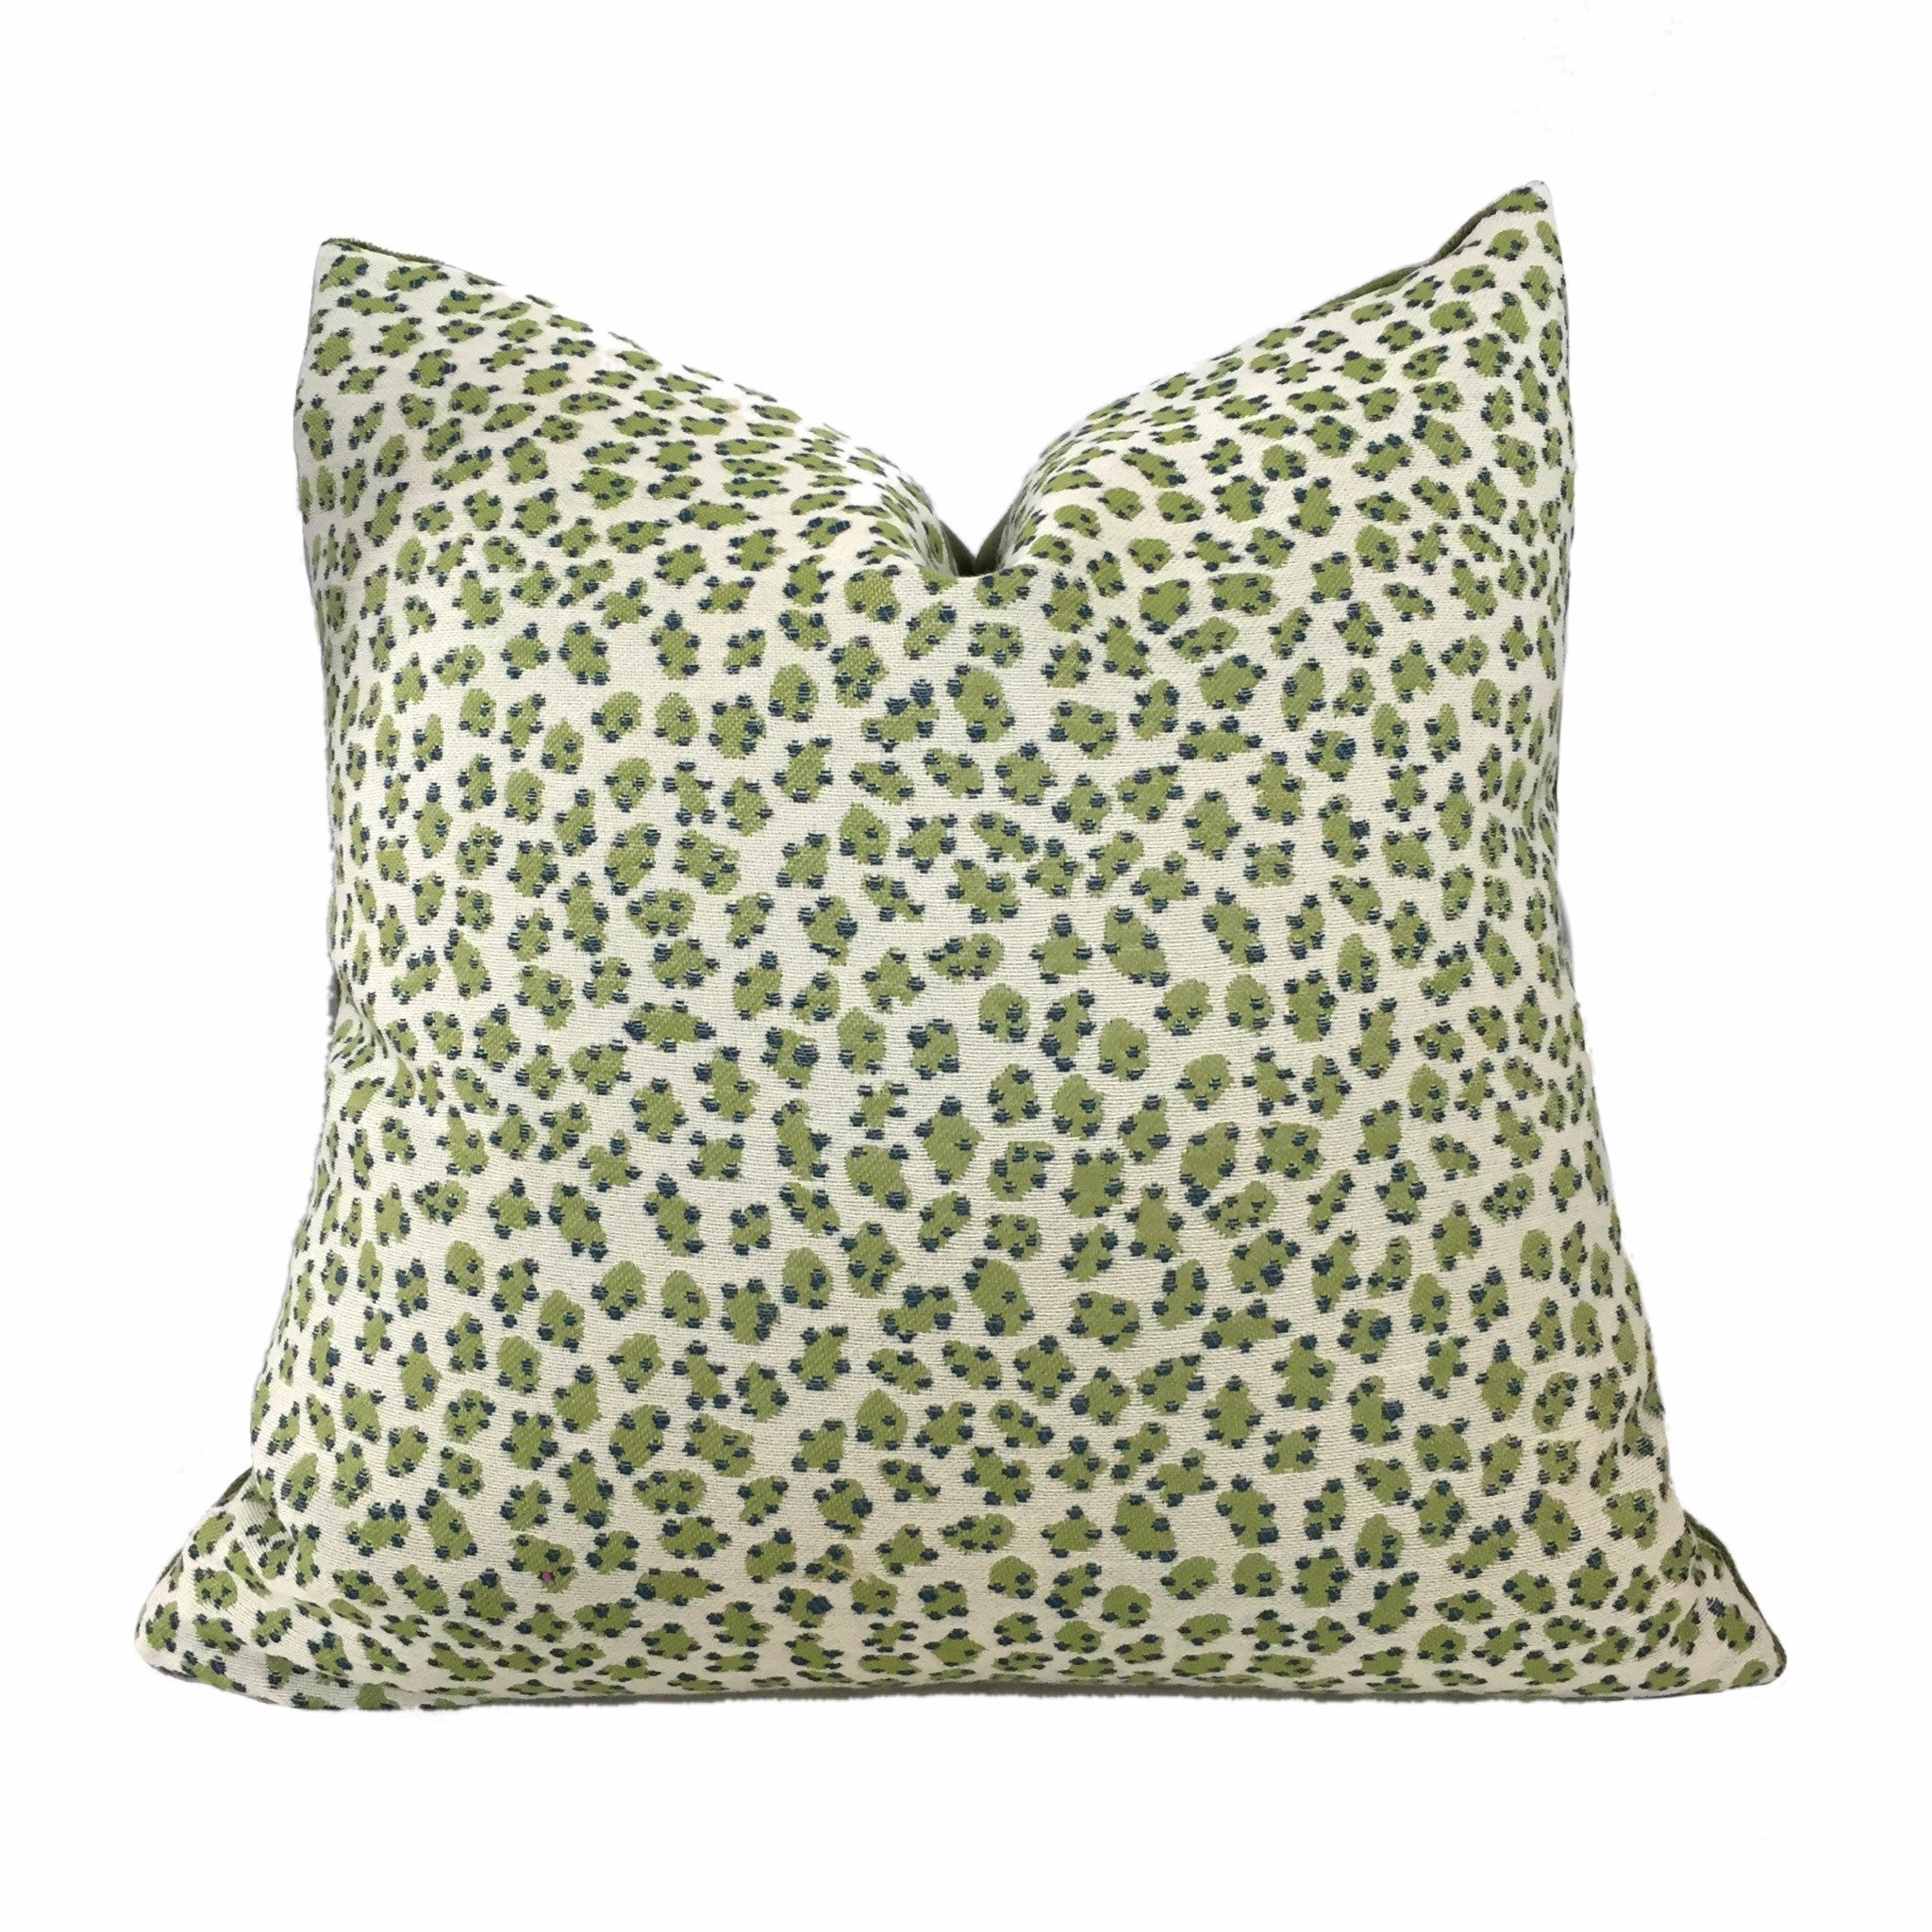 Tilton Fenwick Haute Cactus Green Leopard Cheetah Animal Spot Pillow Cover